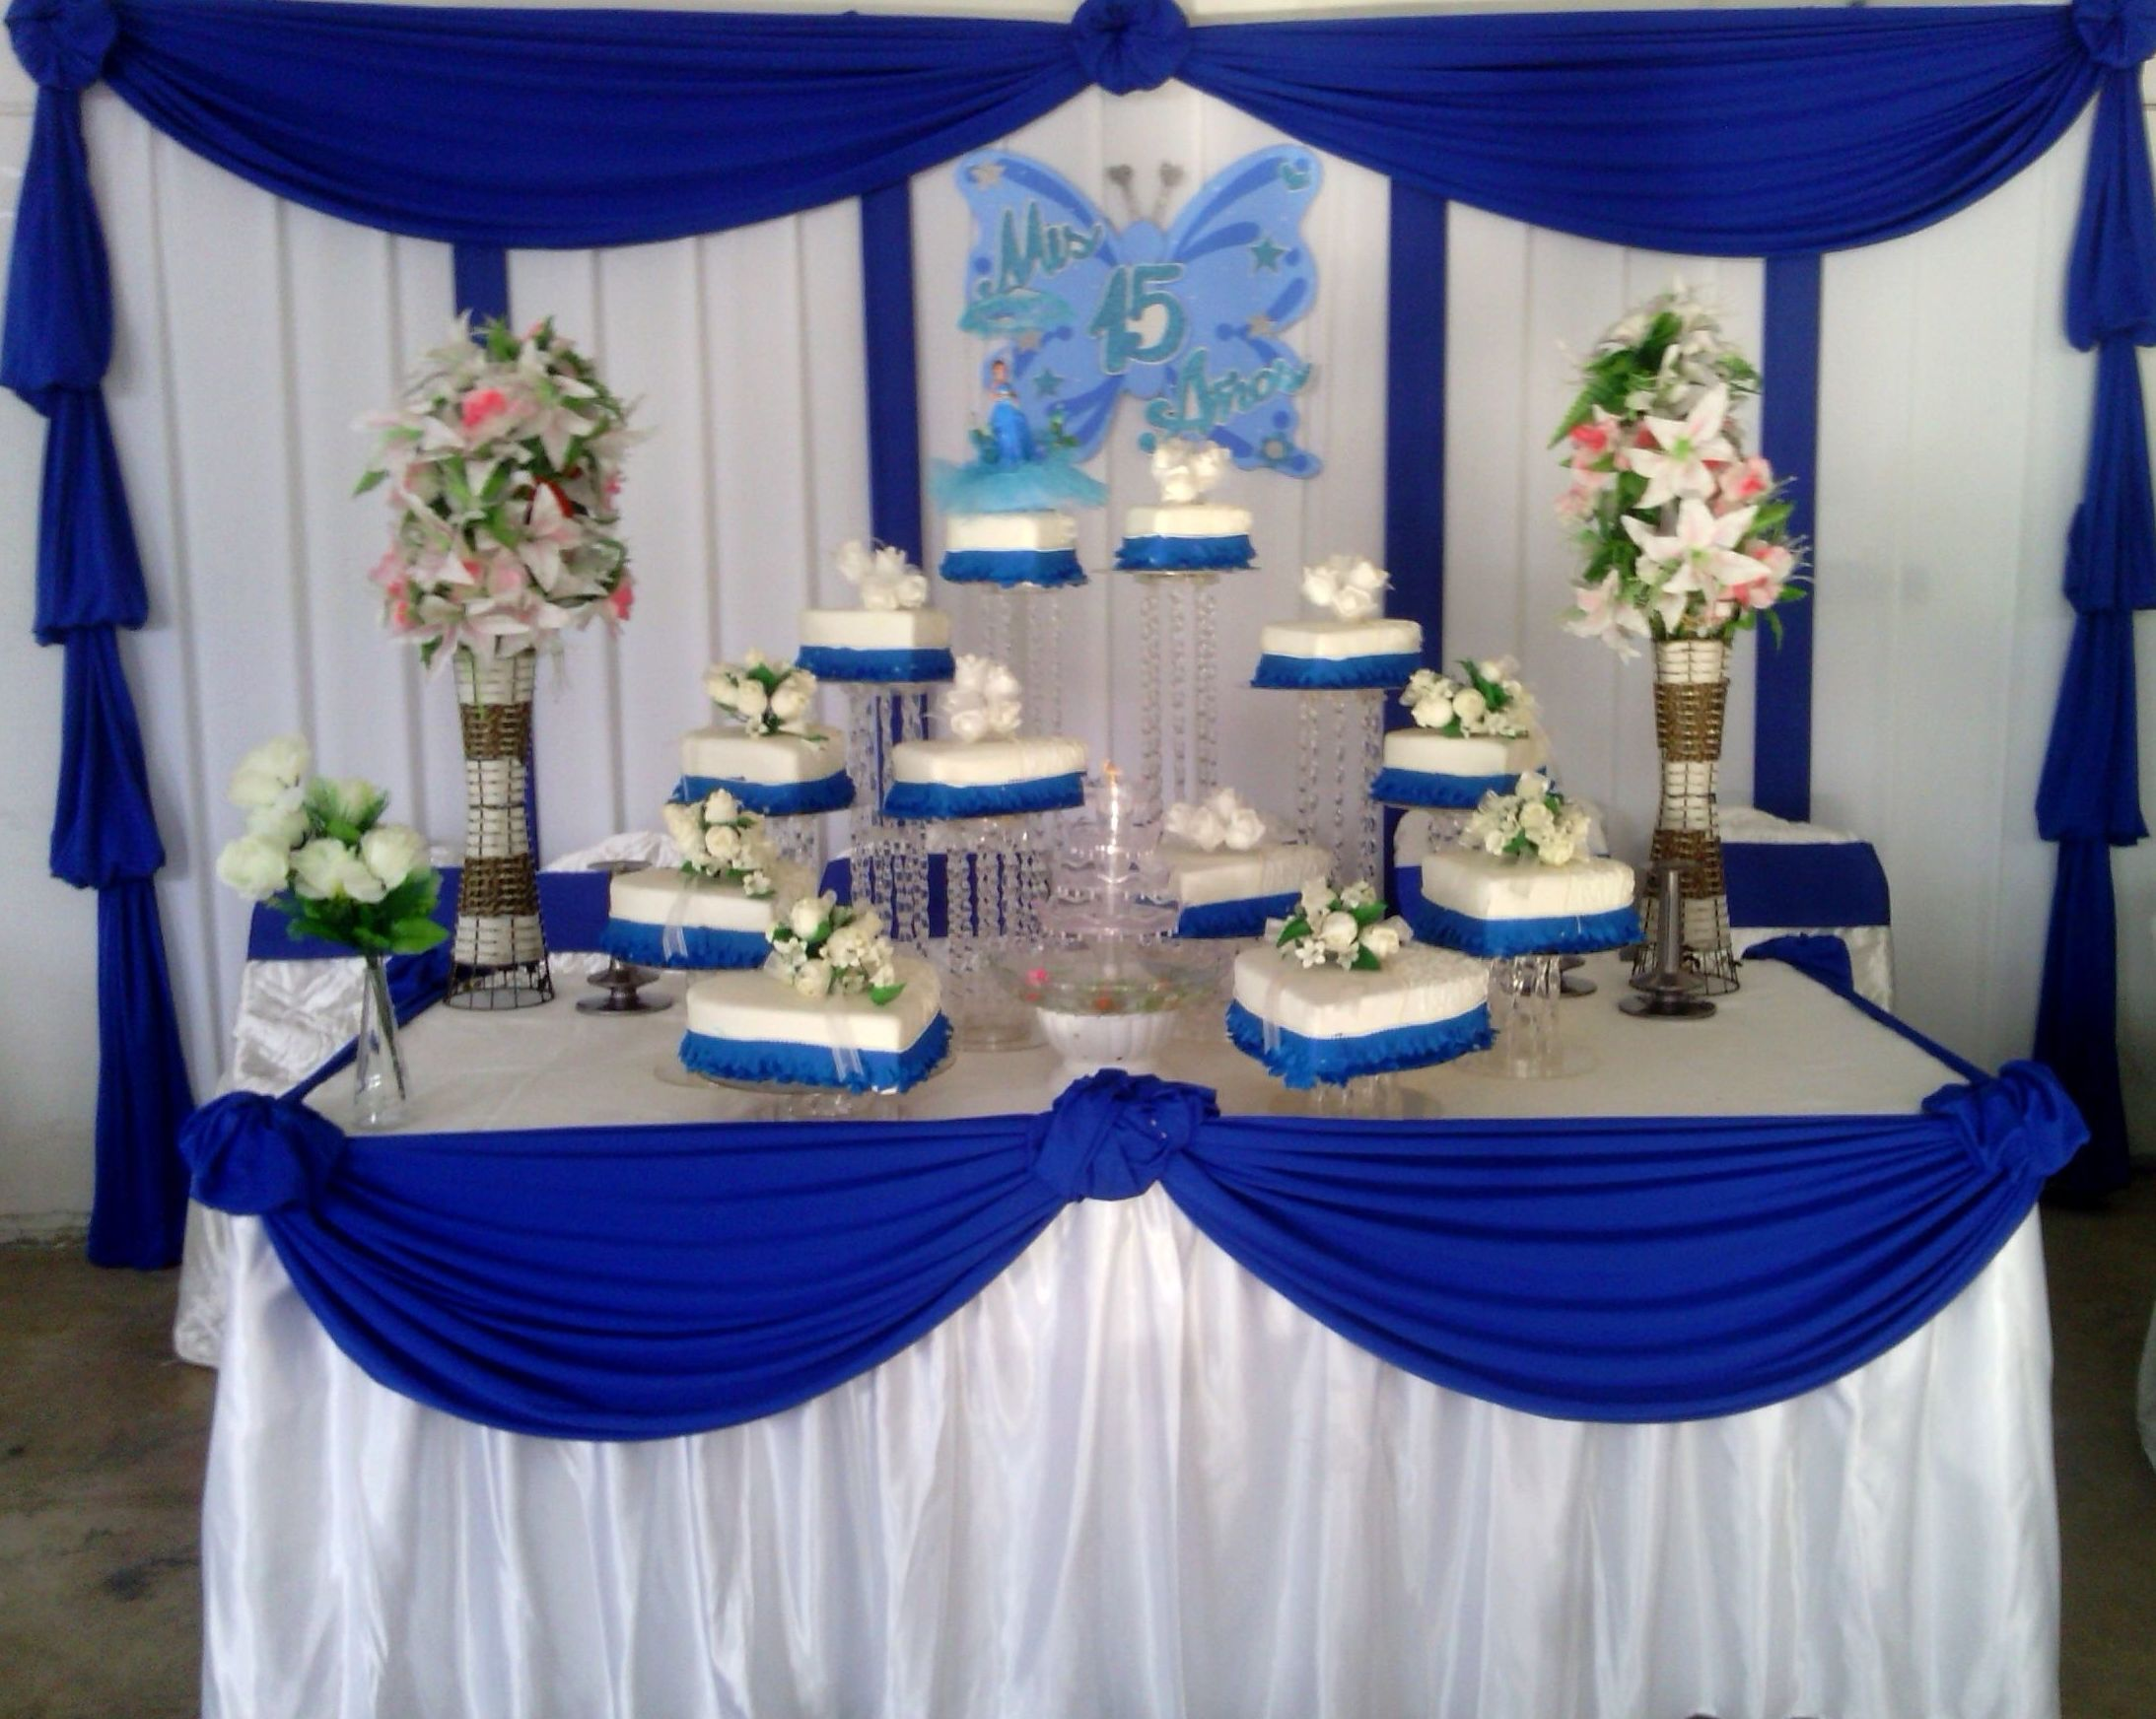 Decoraciones en color azul especial para quince a os for Accesorios decoracion salon